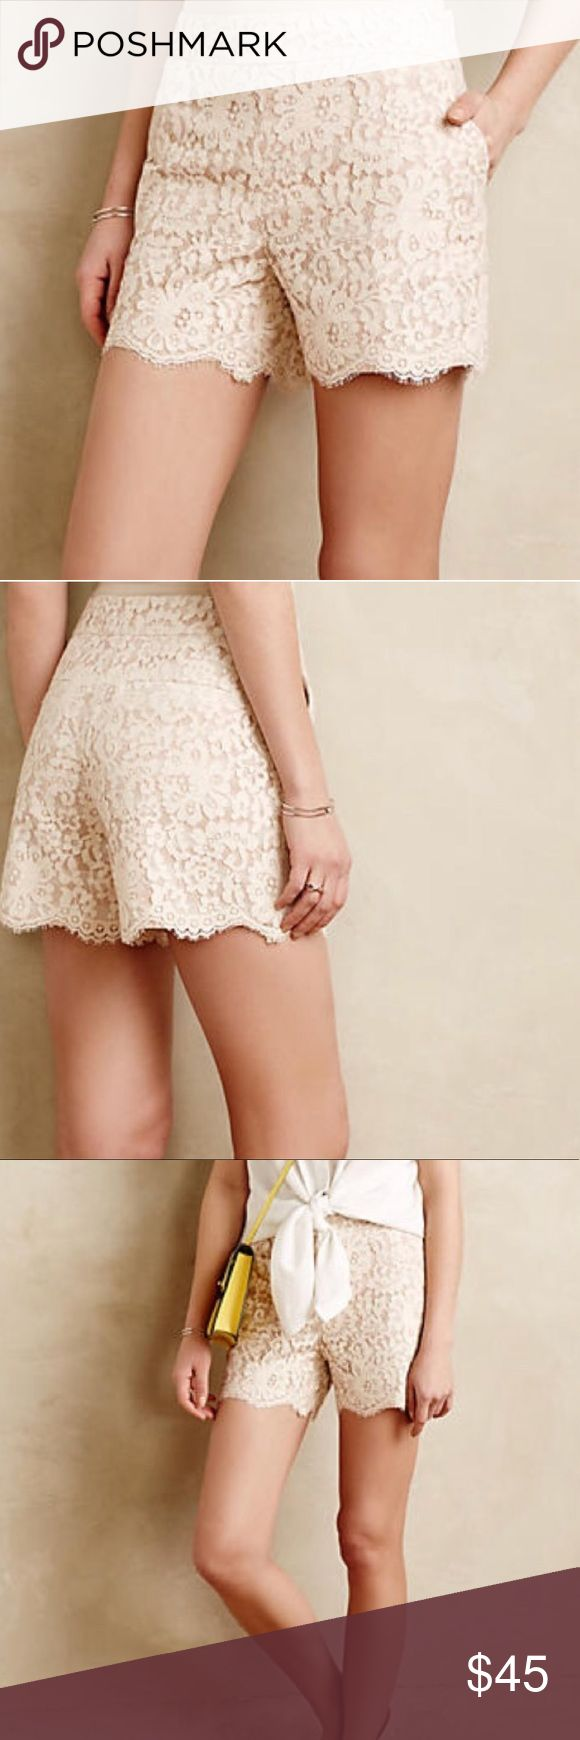 """New cartonnier Scalloped lace shorts Anthropologie Cartonnier cream lace shorts with a scallop edge and subtle peach striped underlining. Zips and buttons closed at the side. Fully lined. Condition is new with tags with no flaws. SIZE: 6. Waist across 14.5"""" hips across 19"""" rise 10.5"""" inseam 4.5"""" Anthropologie Shorts"""